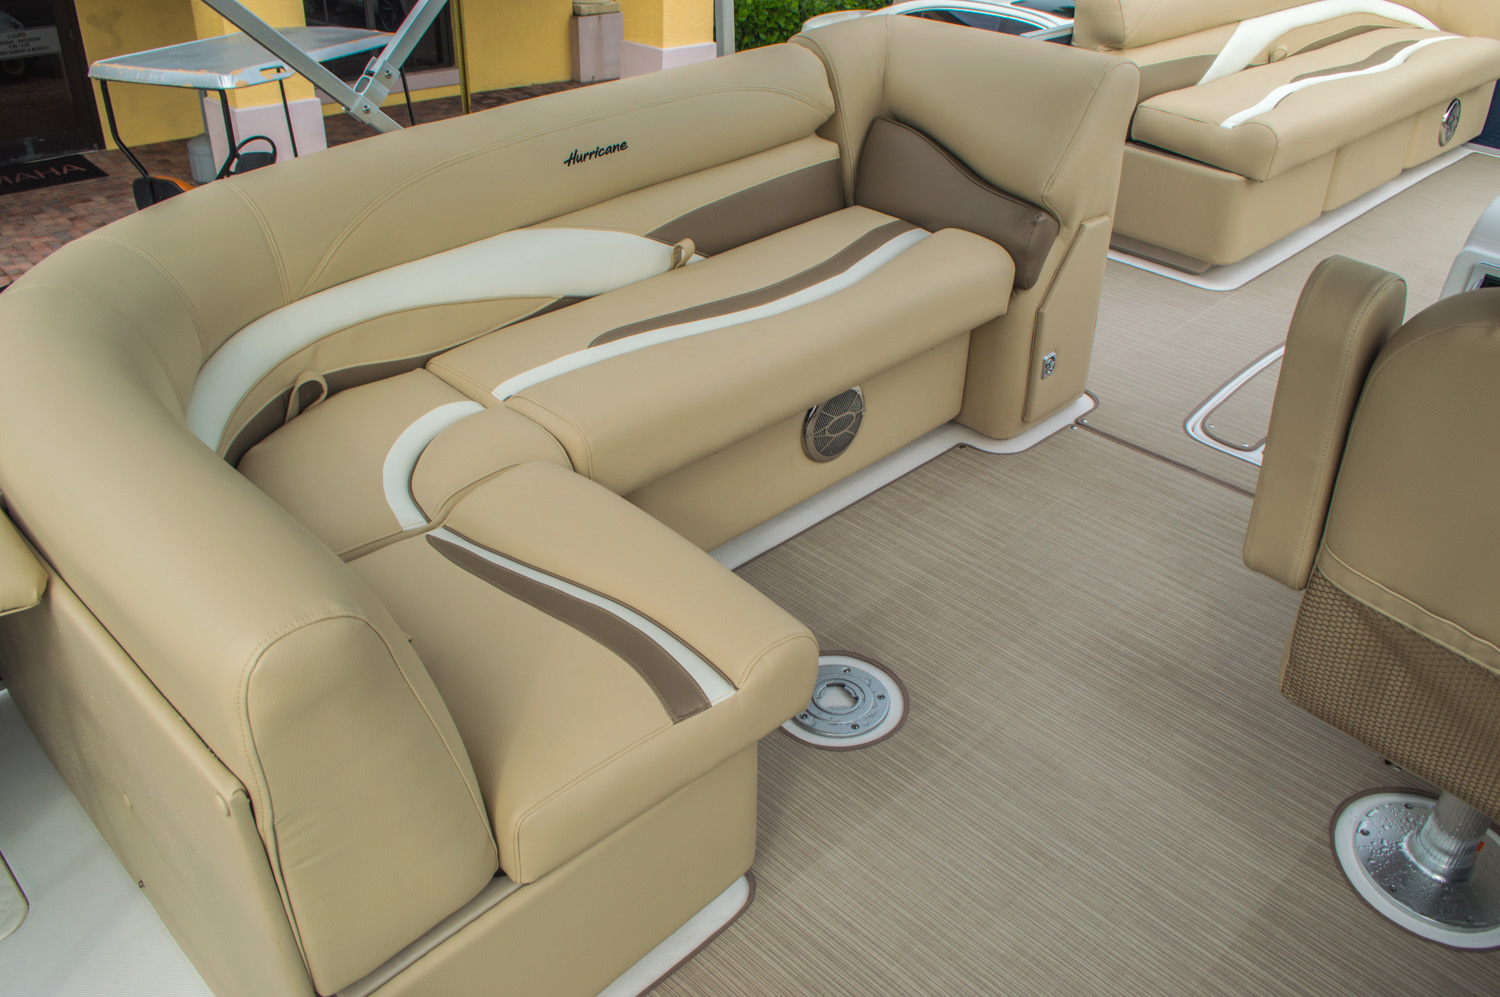 Thumbnail 15 for New 2016 Hurricane FunDeck FD 236 OB boat for sale in Miami, FL